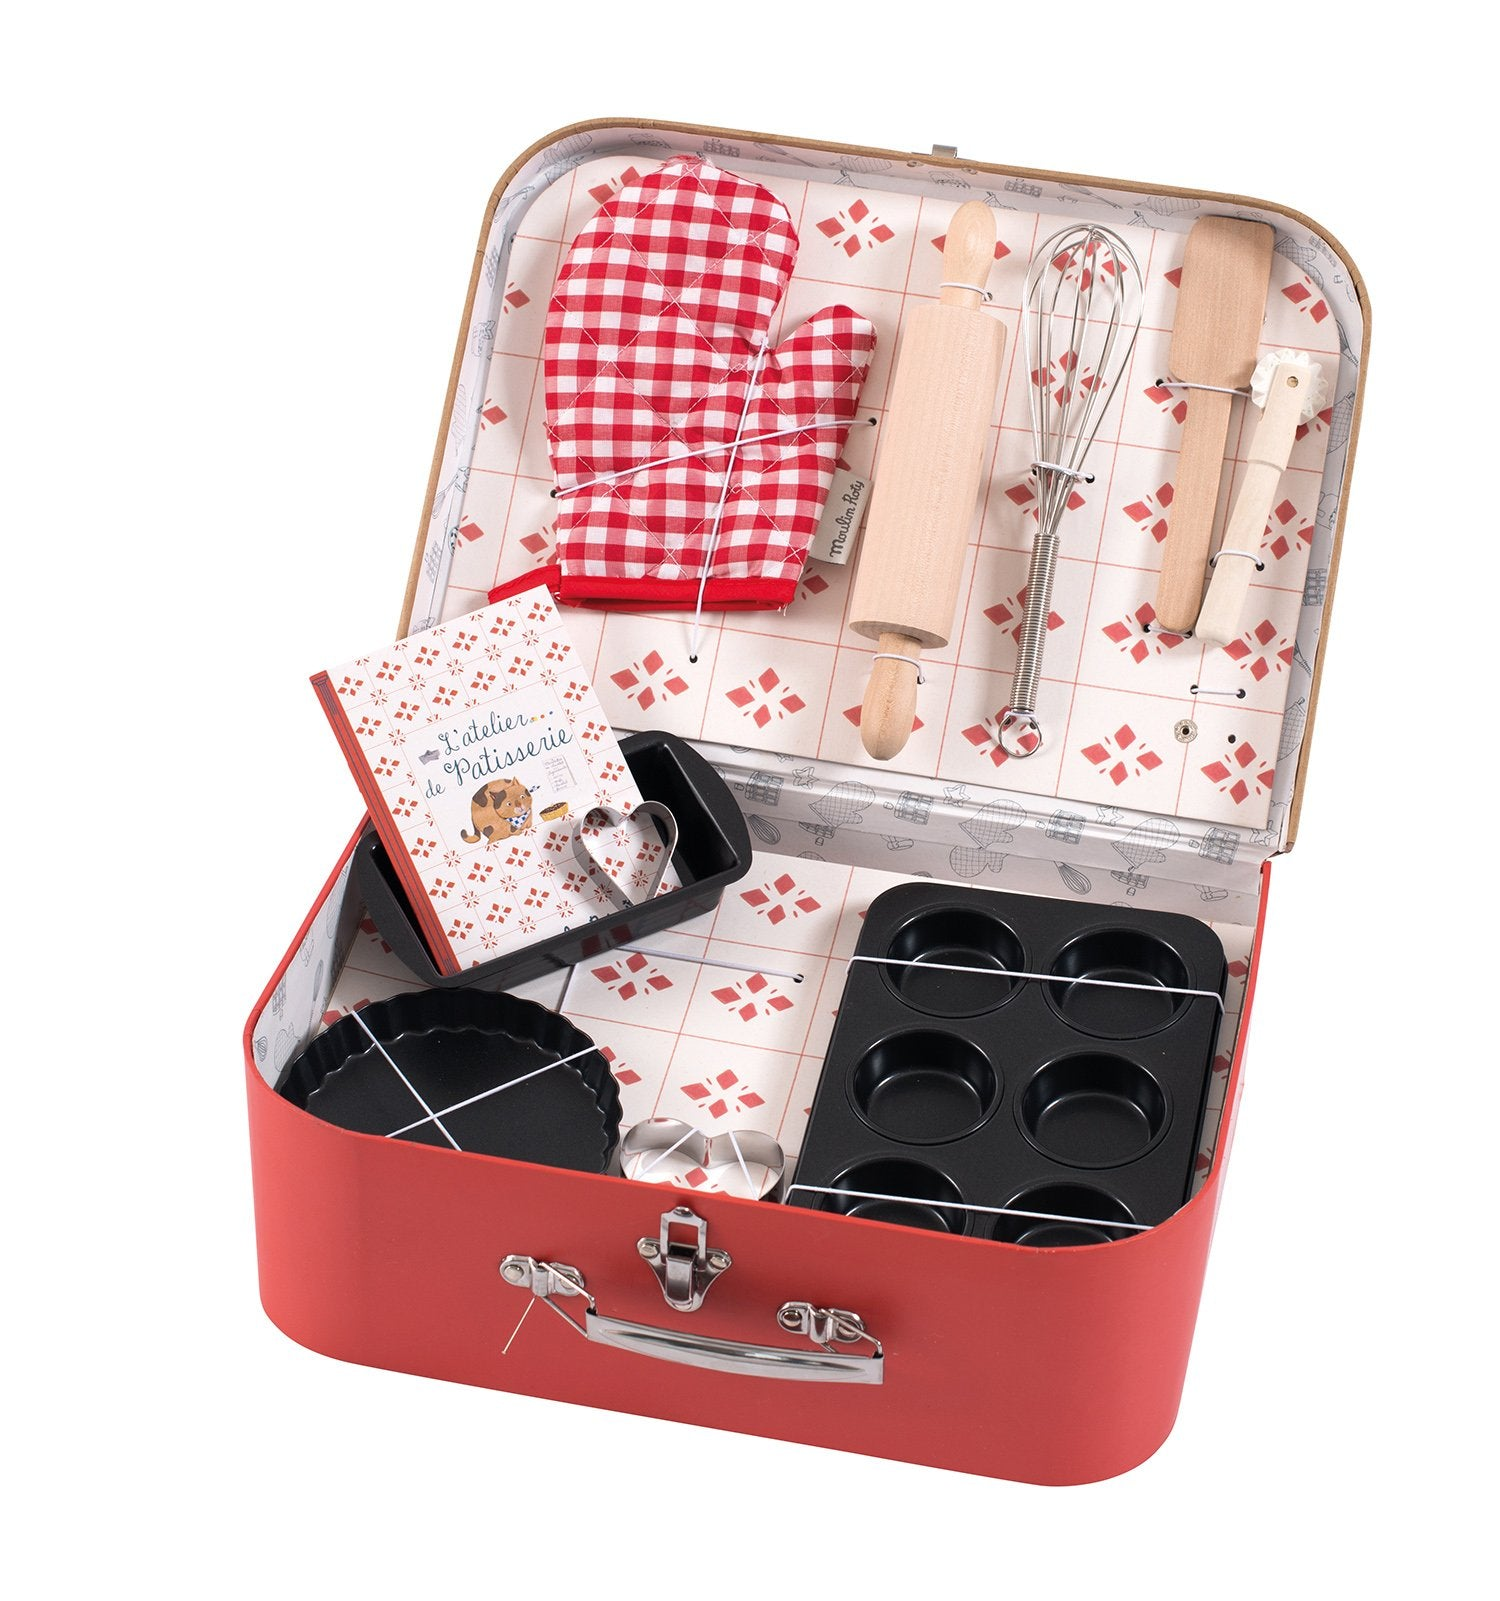 Moulin Roty Baking Set